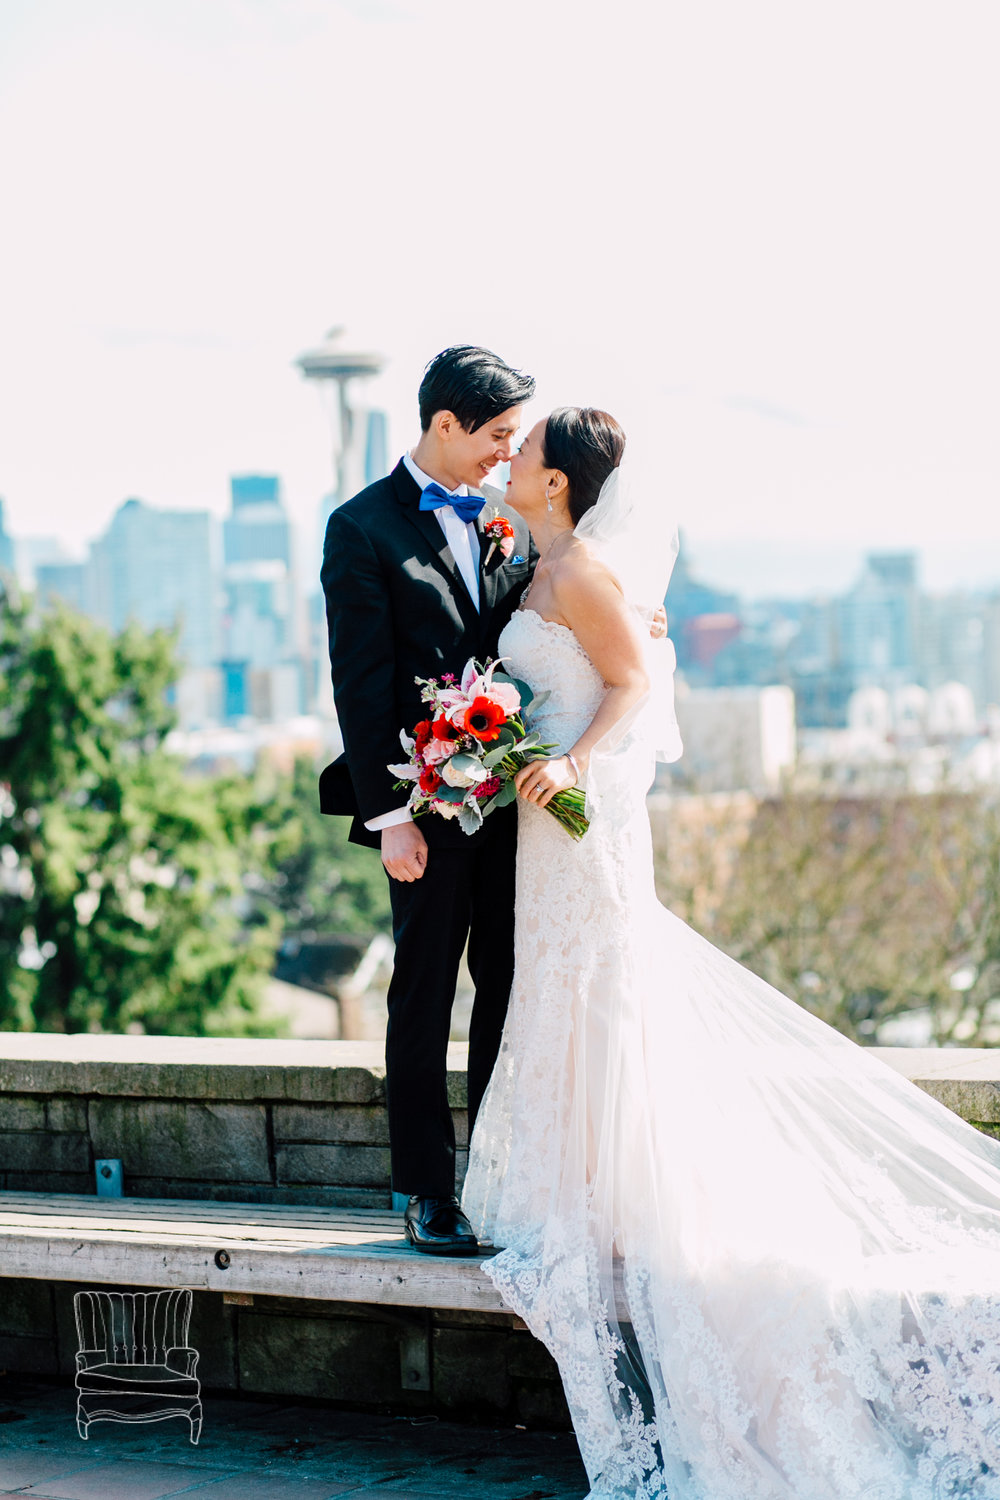 seattle-kerry-park-wedding-katheryn-moran-photography-yovithomas-1.JPG